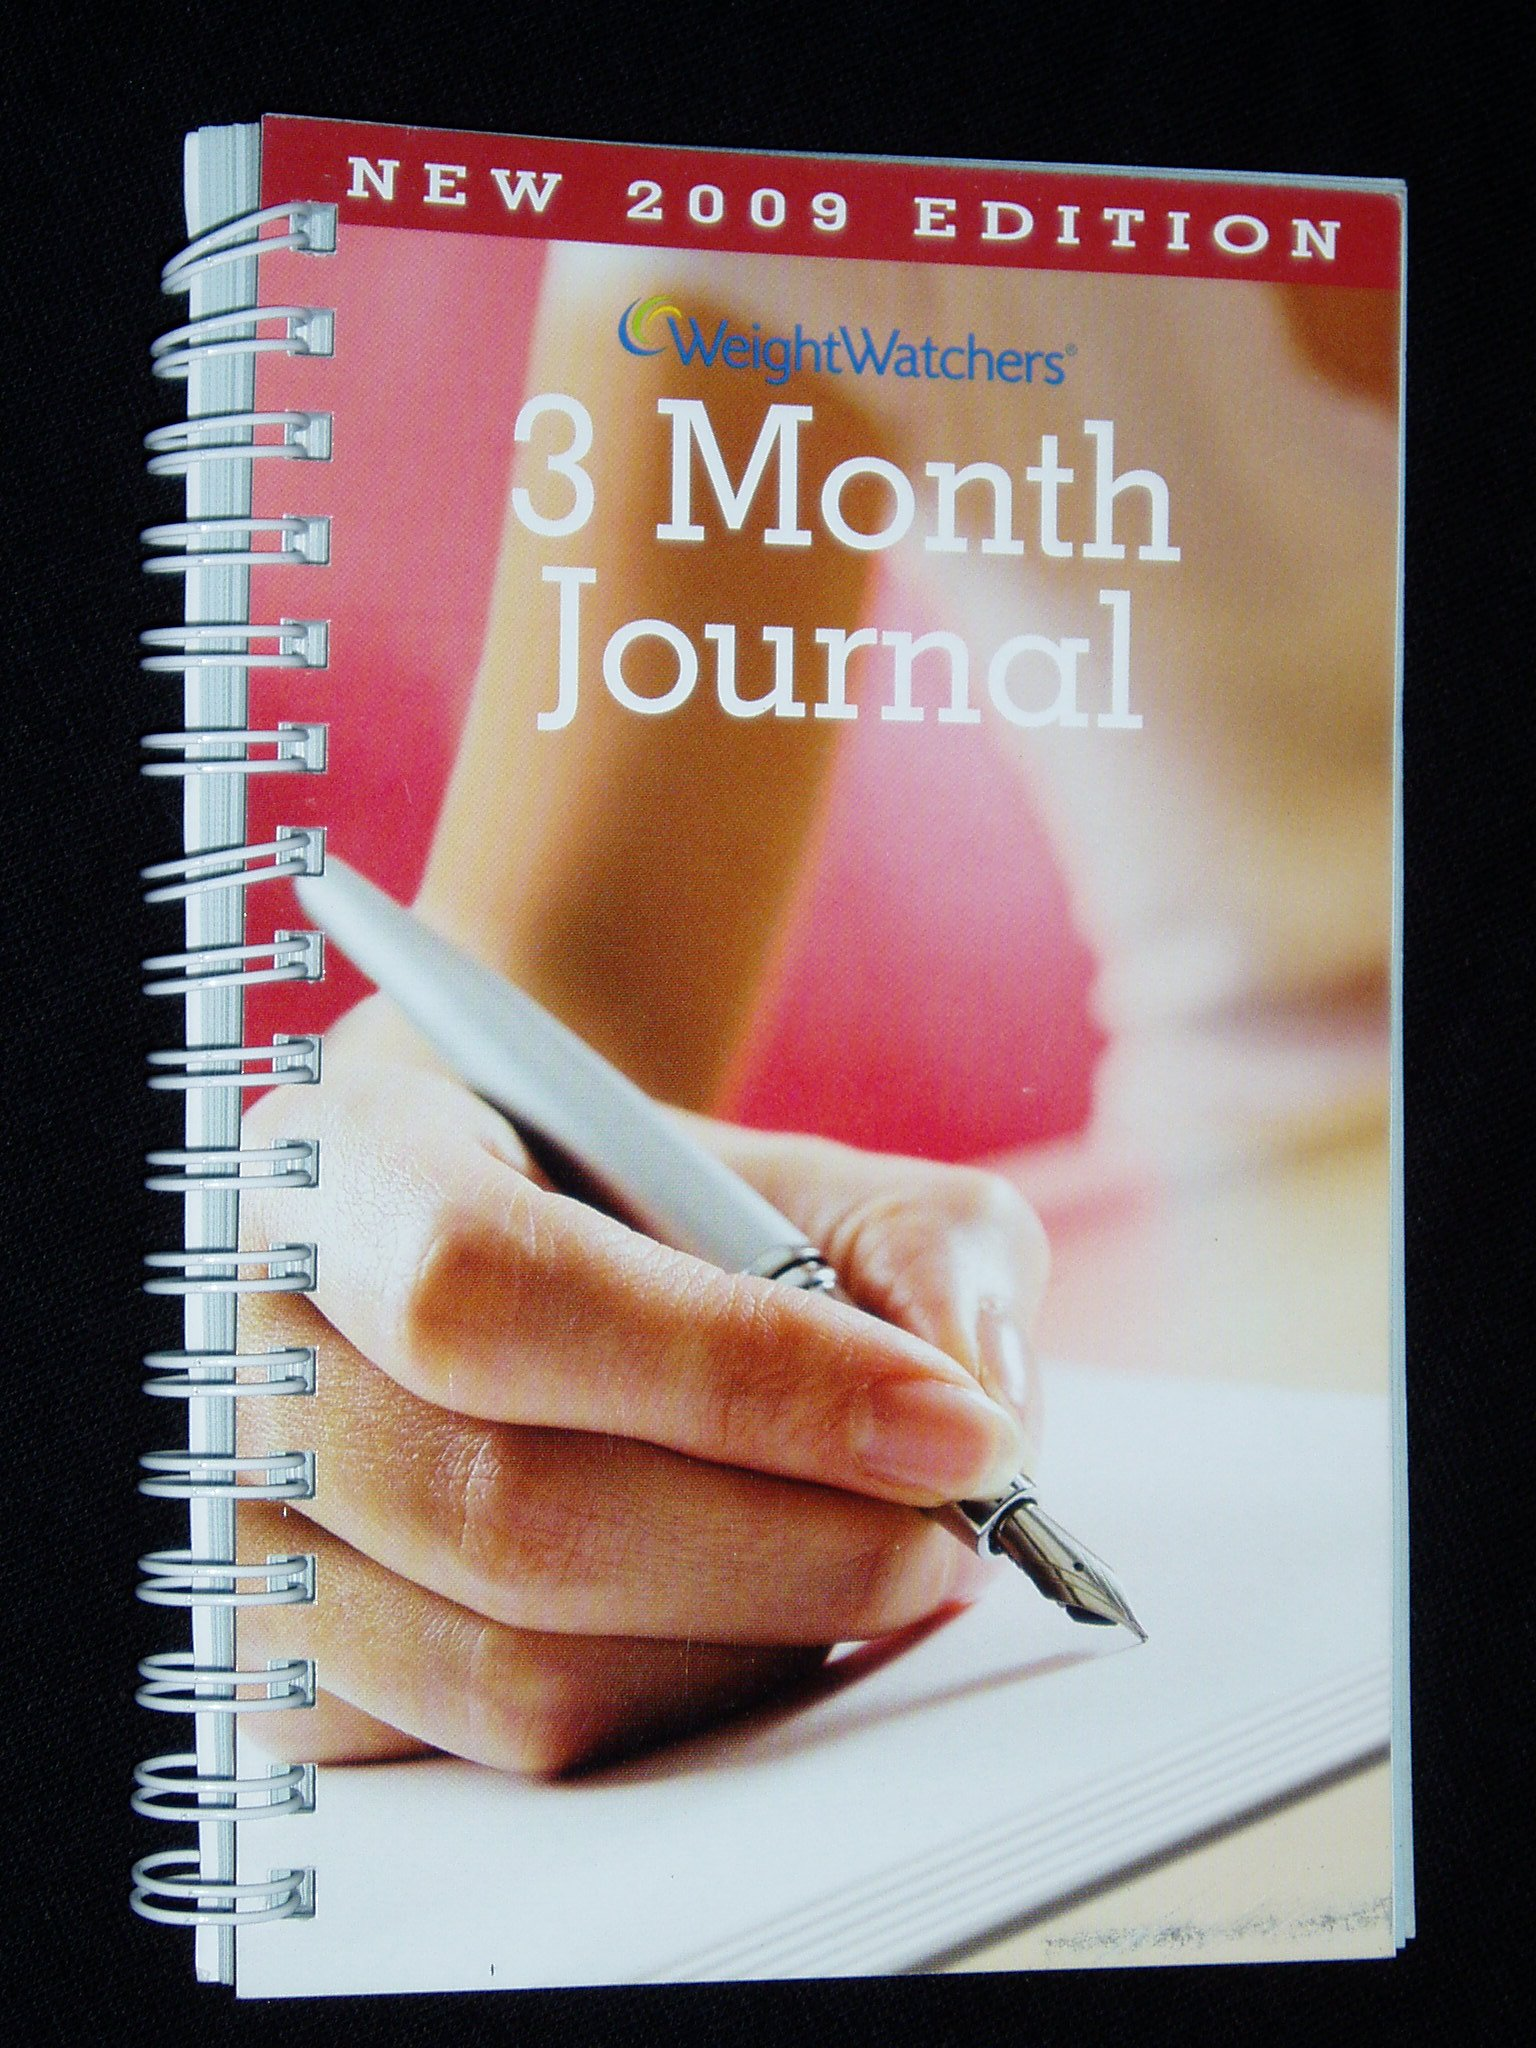 weight watchers 2009 edition 3 month journal weight watchers